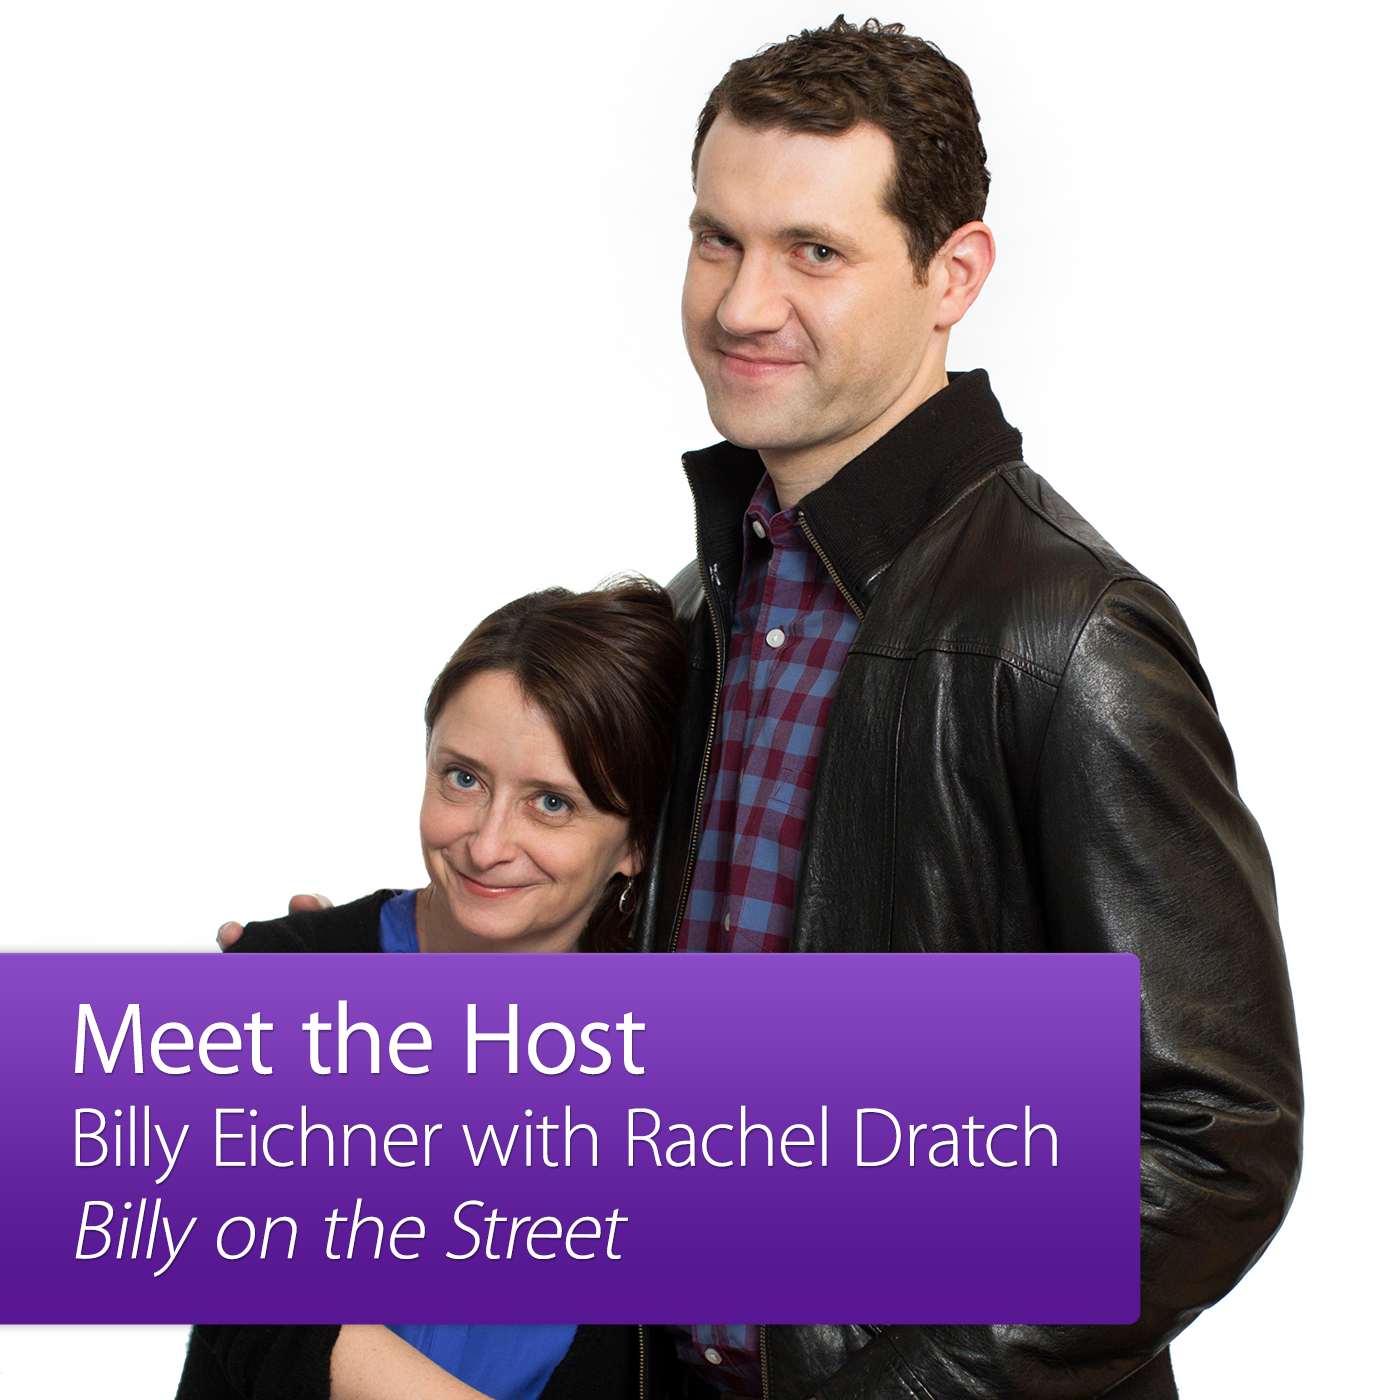 Billy Eichner with Rachel Dratch: Meet the Host